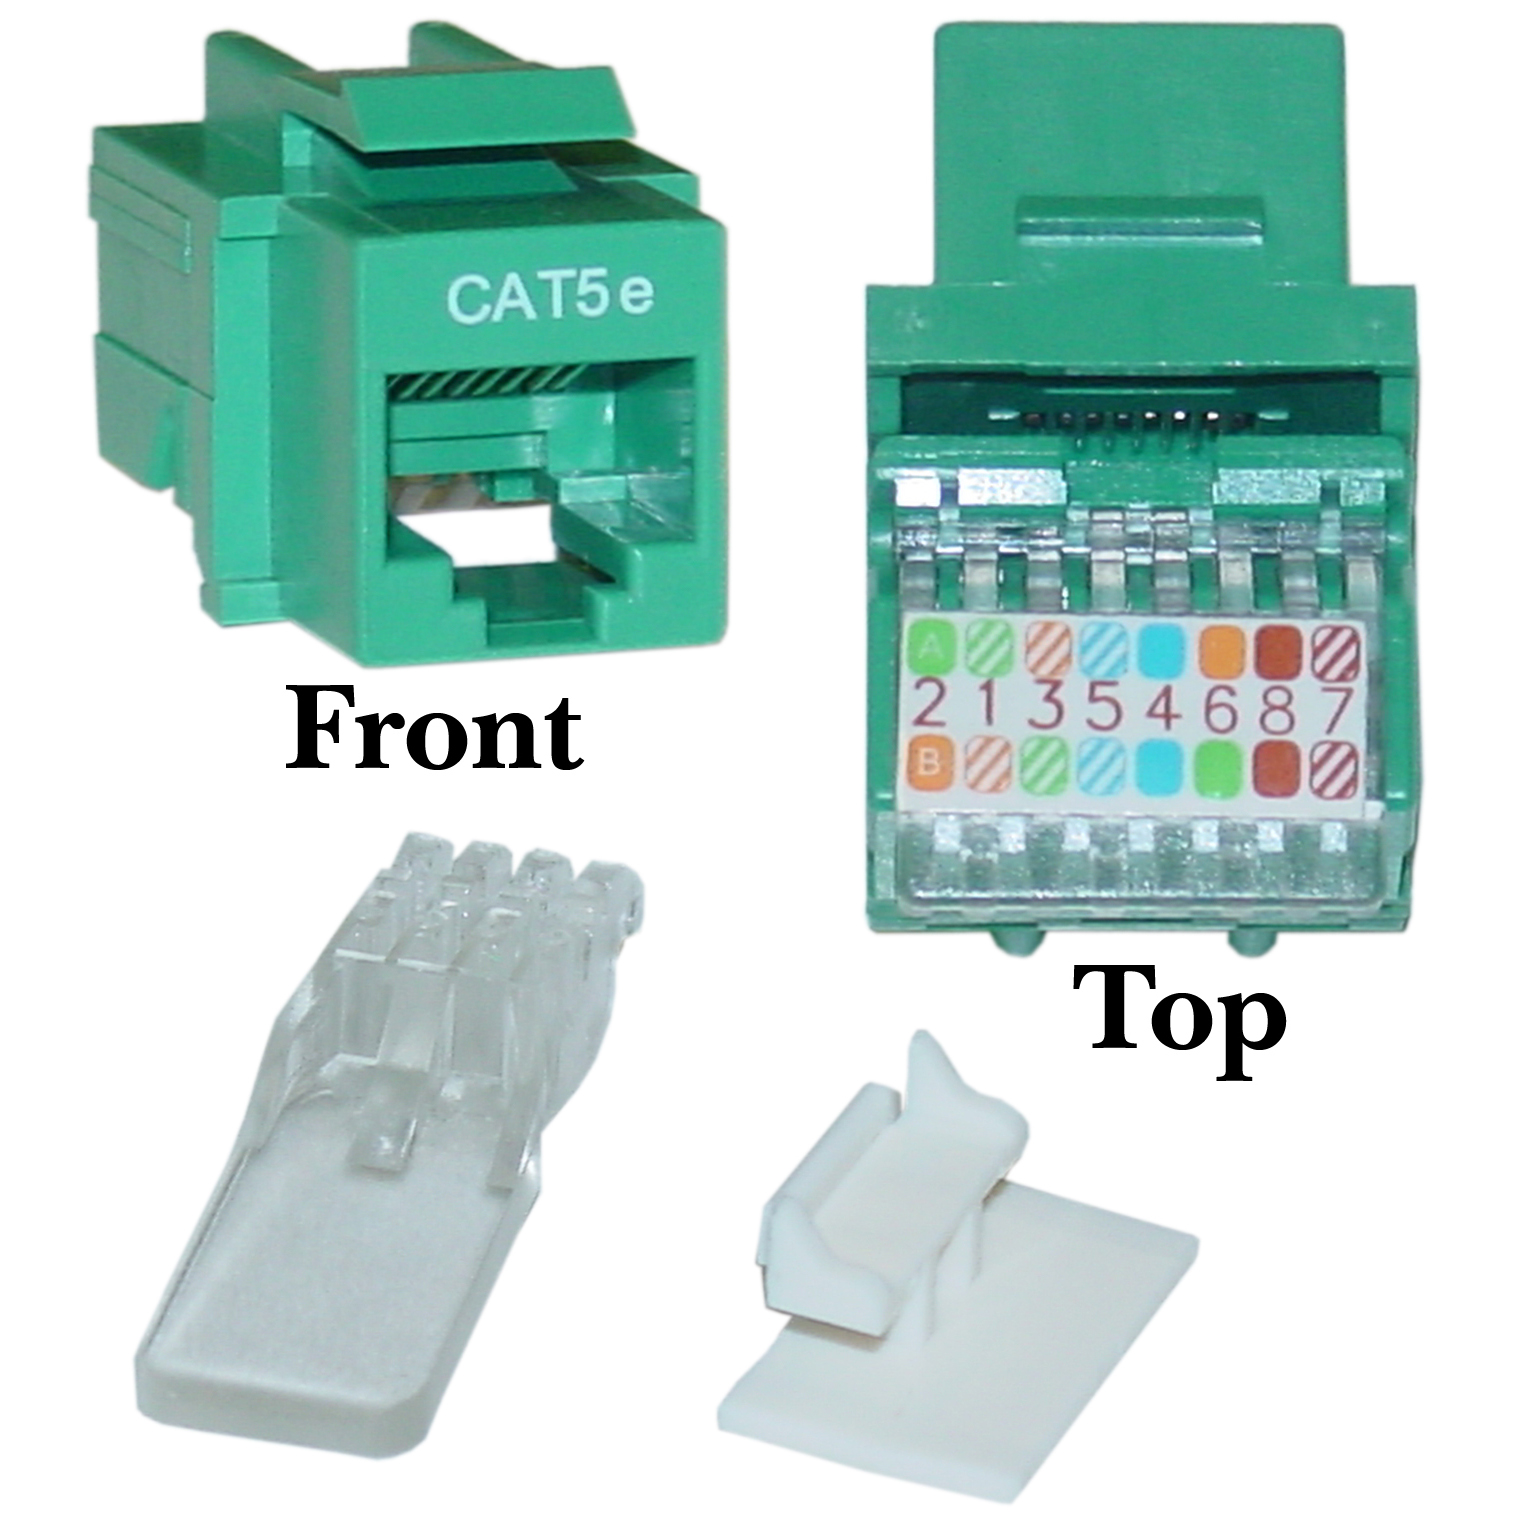 Cat5e Wiring Diagram Pdf Female Great Installation Of Green Rj45 Keystone Jack Toolless Rh Cablewholesale Com Connector 568b